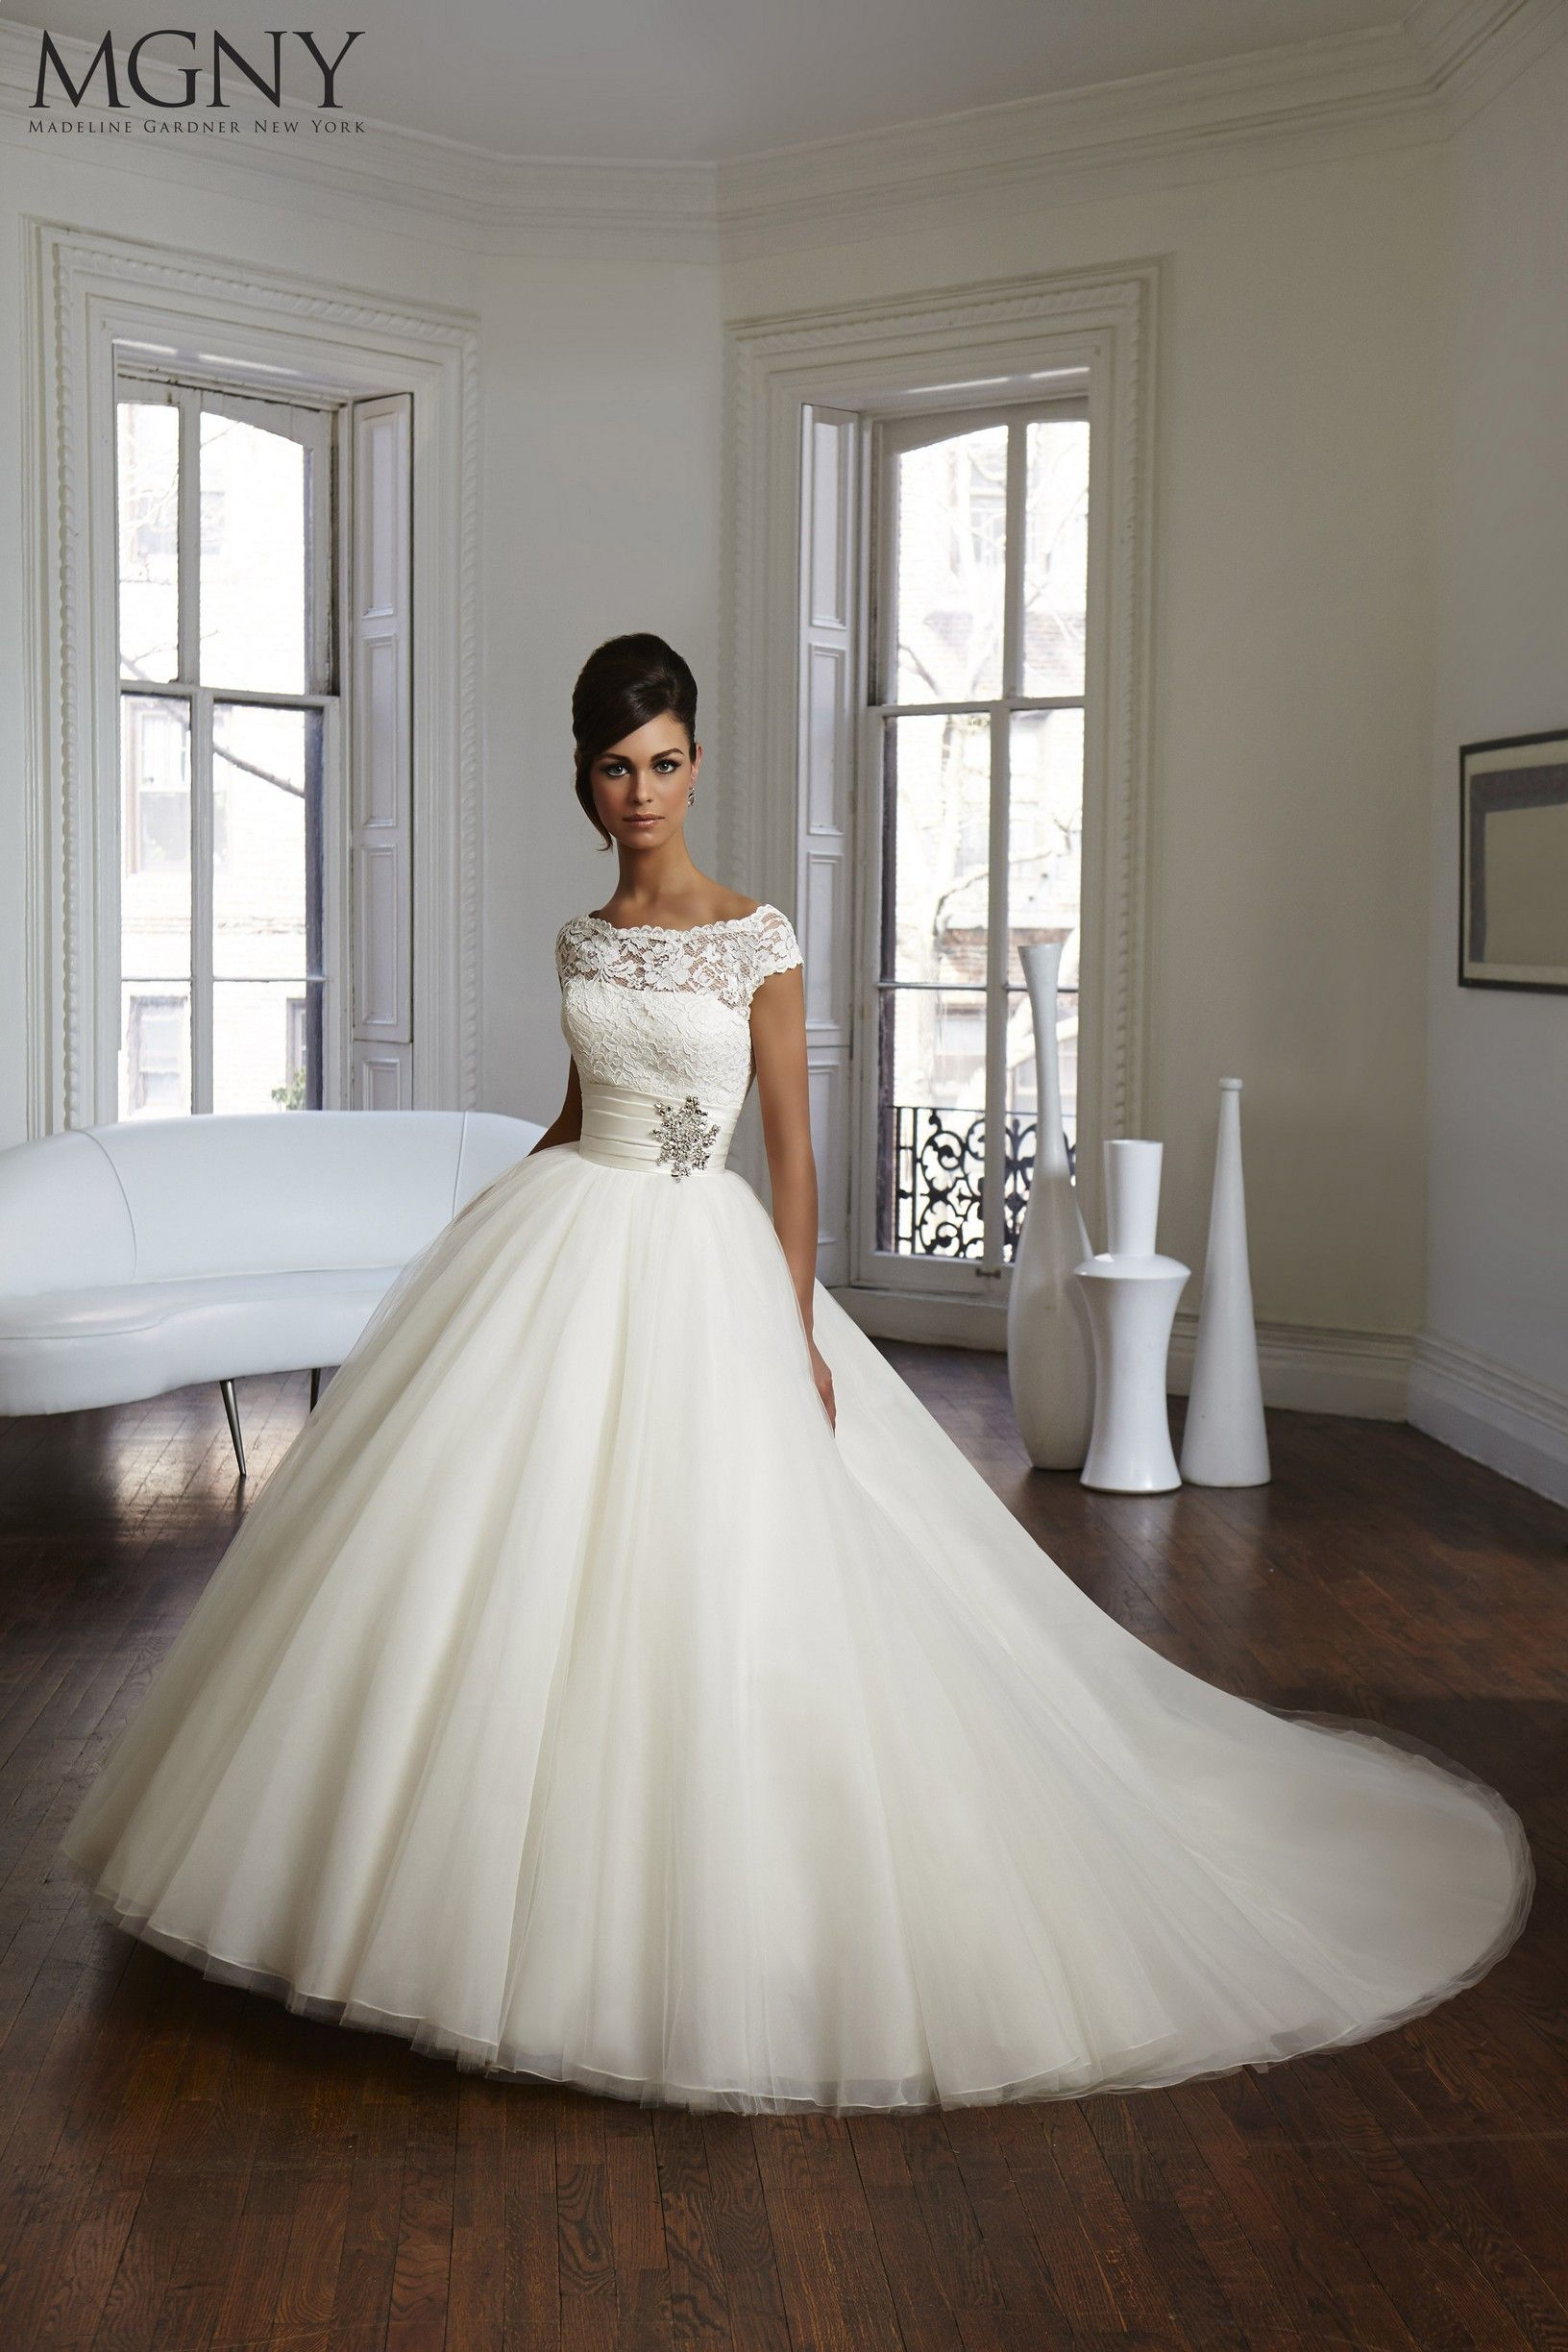 Clara Louise This Os The Dress I Saw In Magazine Mgny Stunning Click On It Back Is Amazing Too